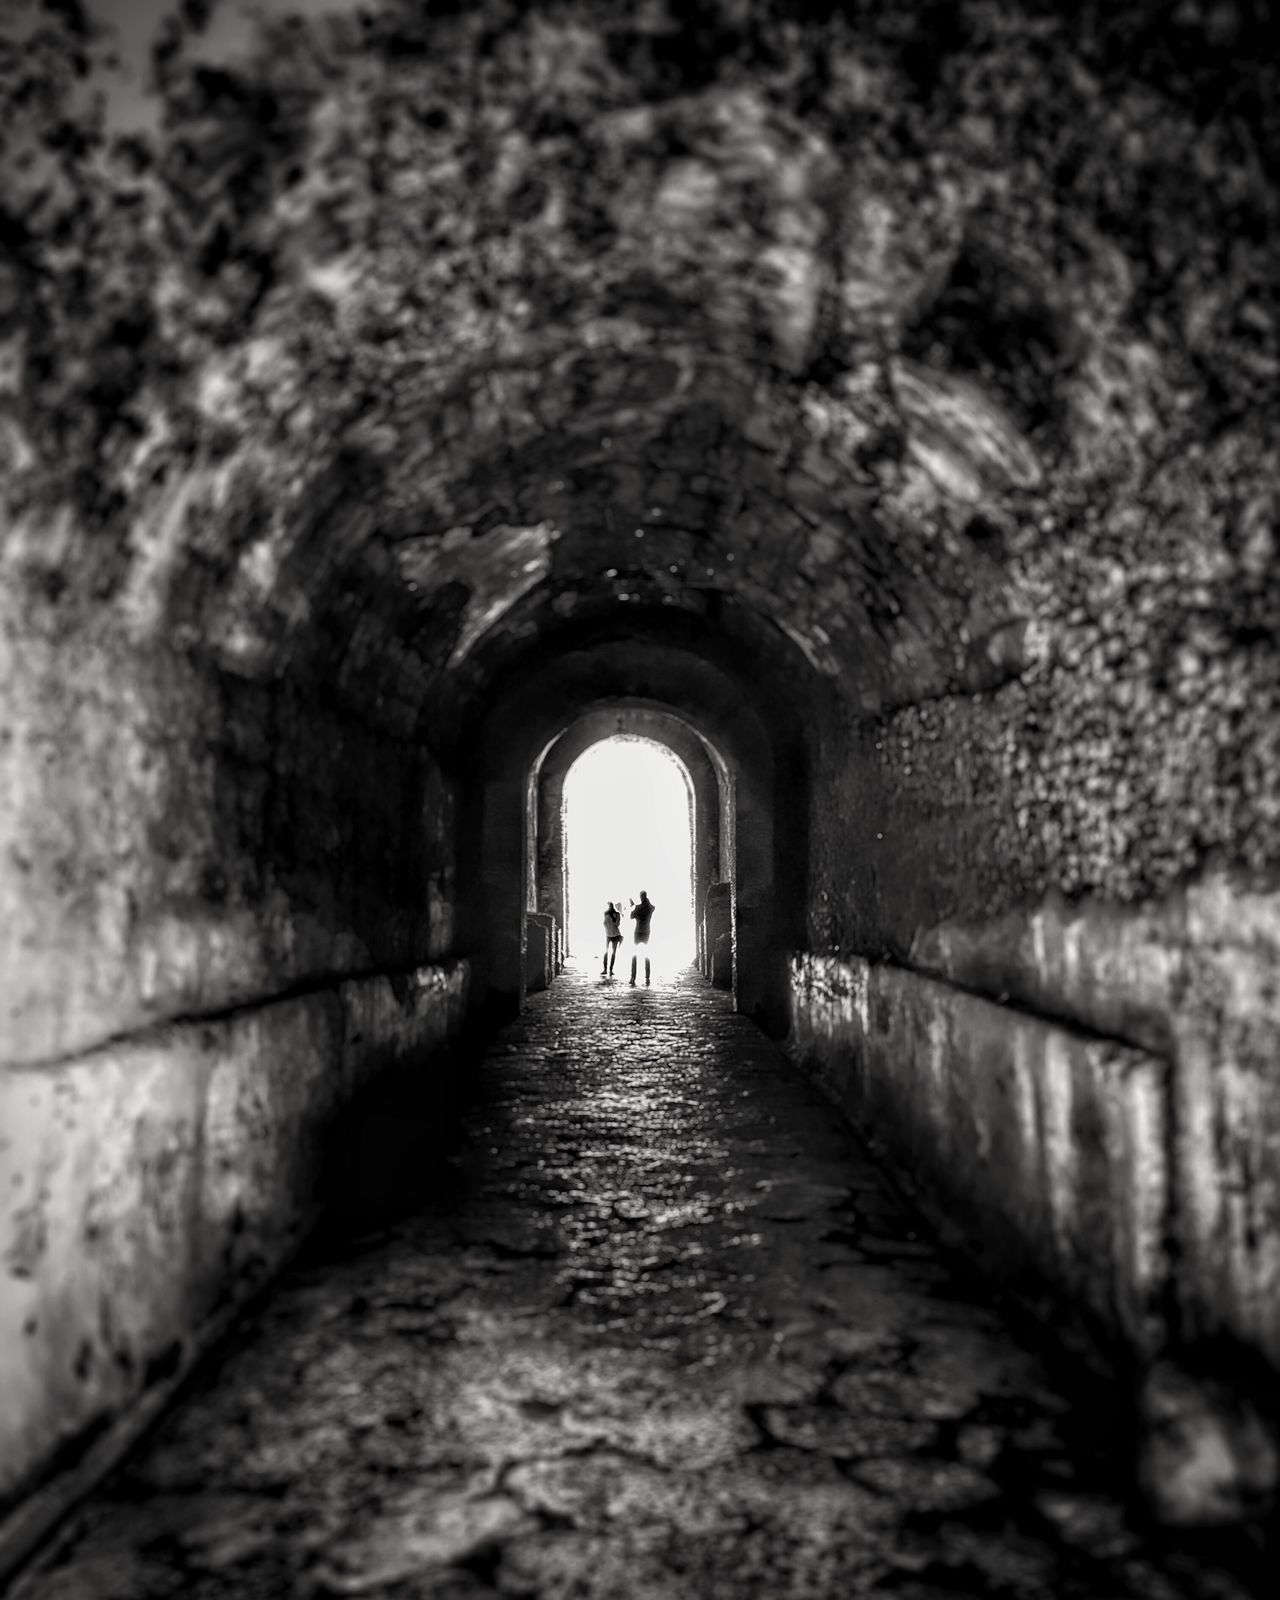 My Year My View The Way Forward Real People Tunnel Arch Walking Built Structure Architecture Day Indoors  Silhouette Full Length Men One Person Archway People Pompeii  Amalfi Coast Italy Blackandwhite Blackandwhitephotography Black & White